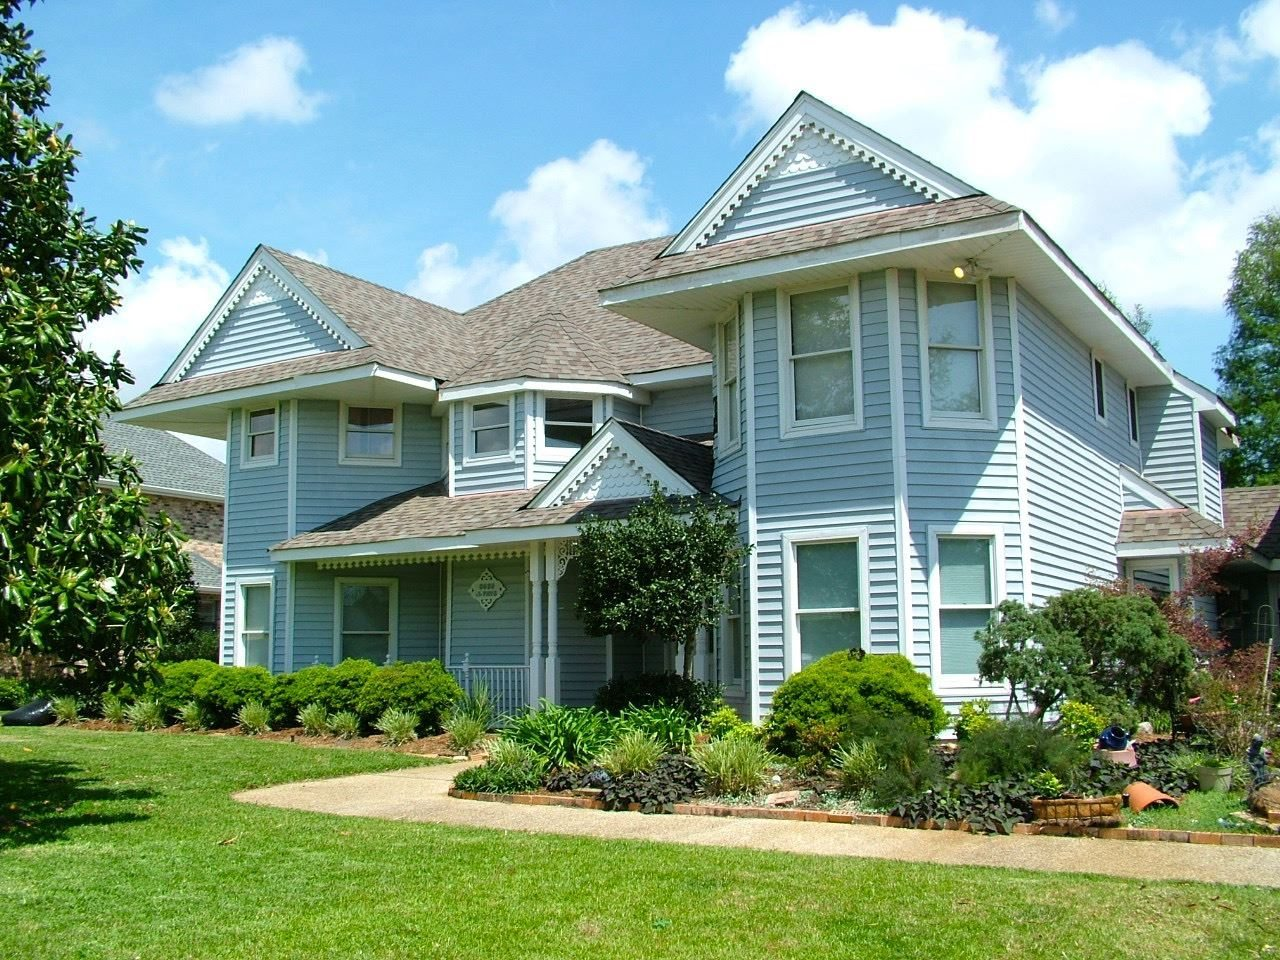 Hardie vinyl siding contractors in new orleans louisiana for Architectural trim